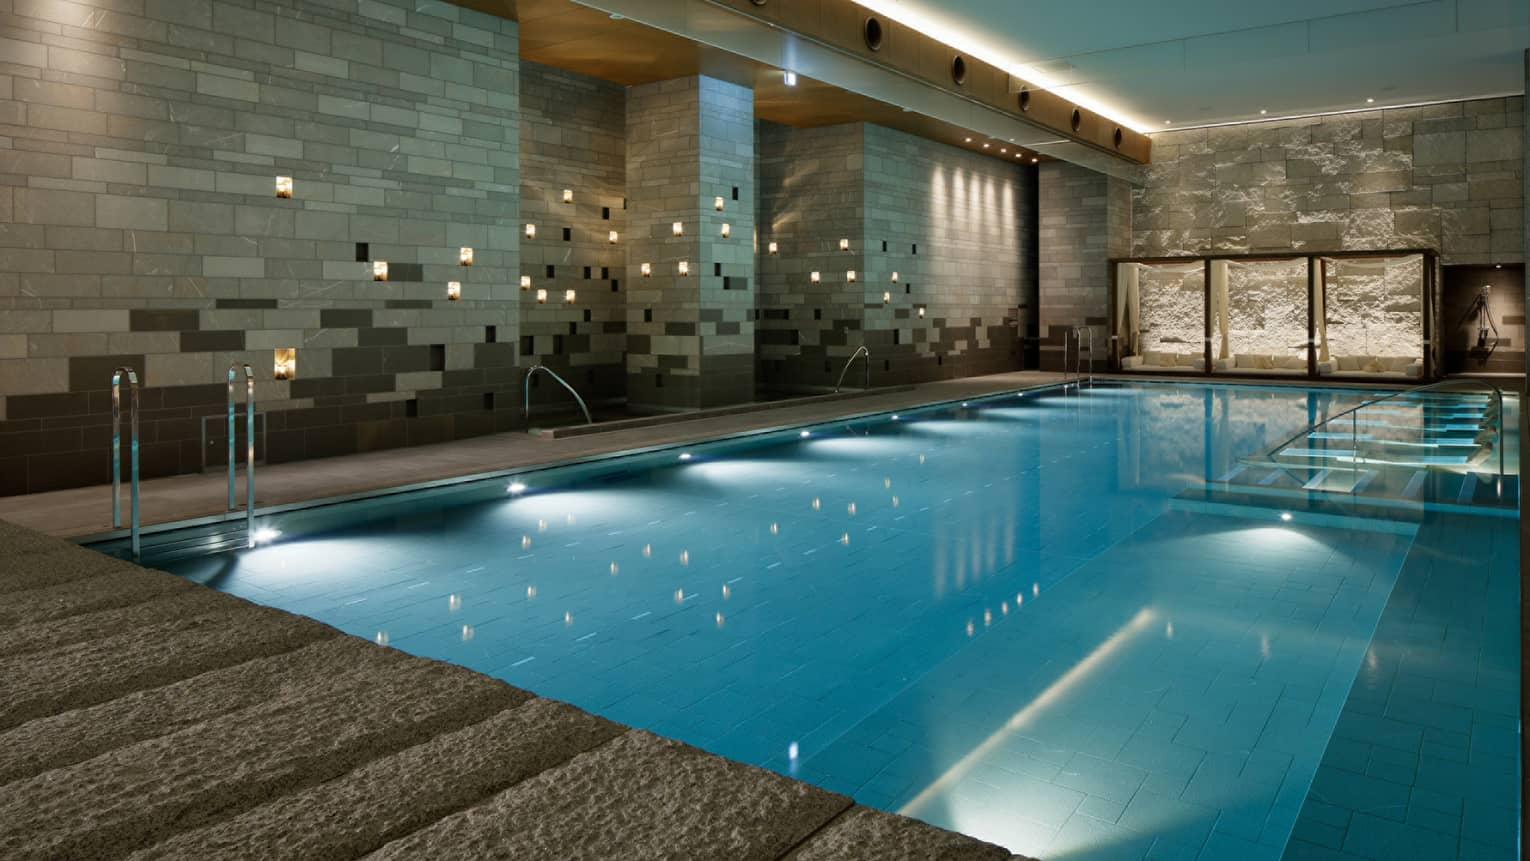 Indoor swimming pool with granite deck, candles along tile wall